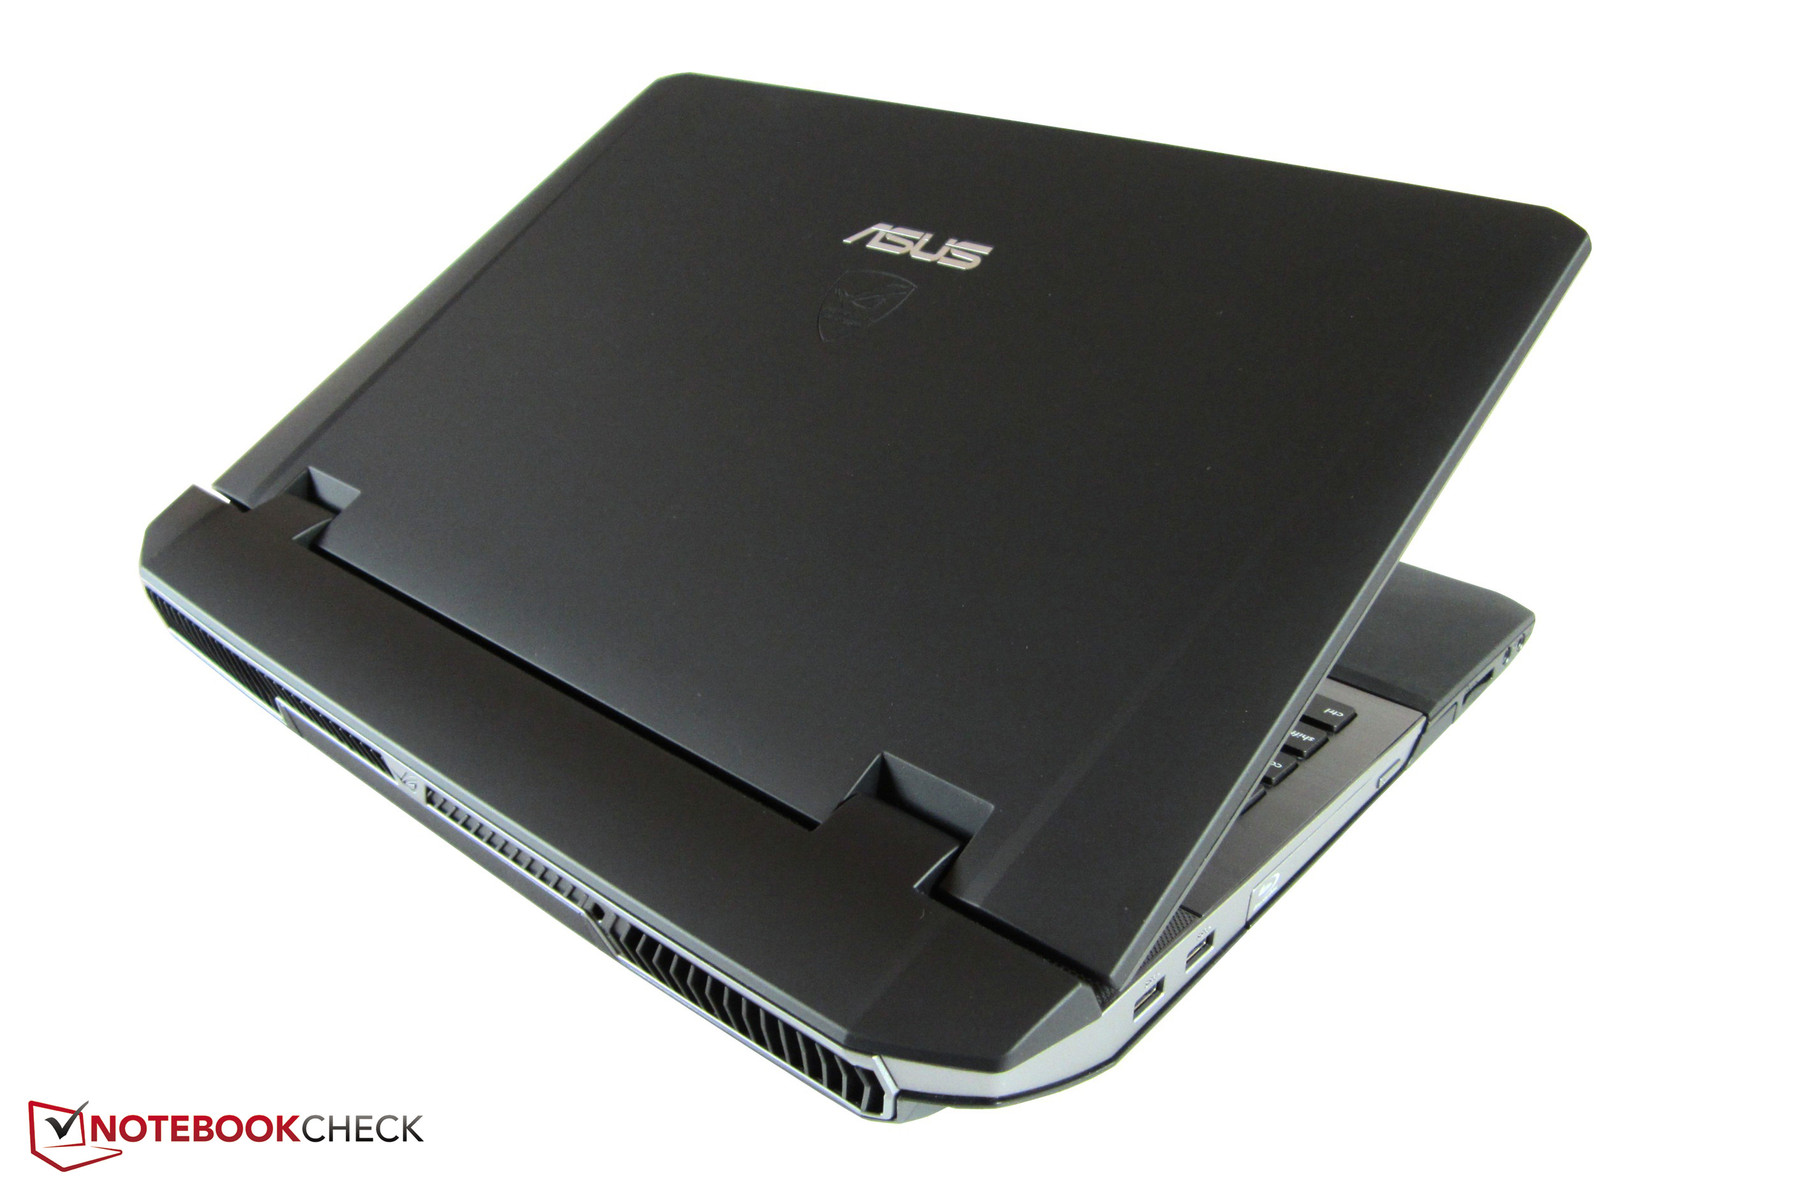 Asus G75VW Notebook Intel USB 3.0 Windows 8 X64